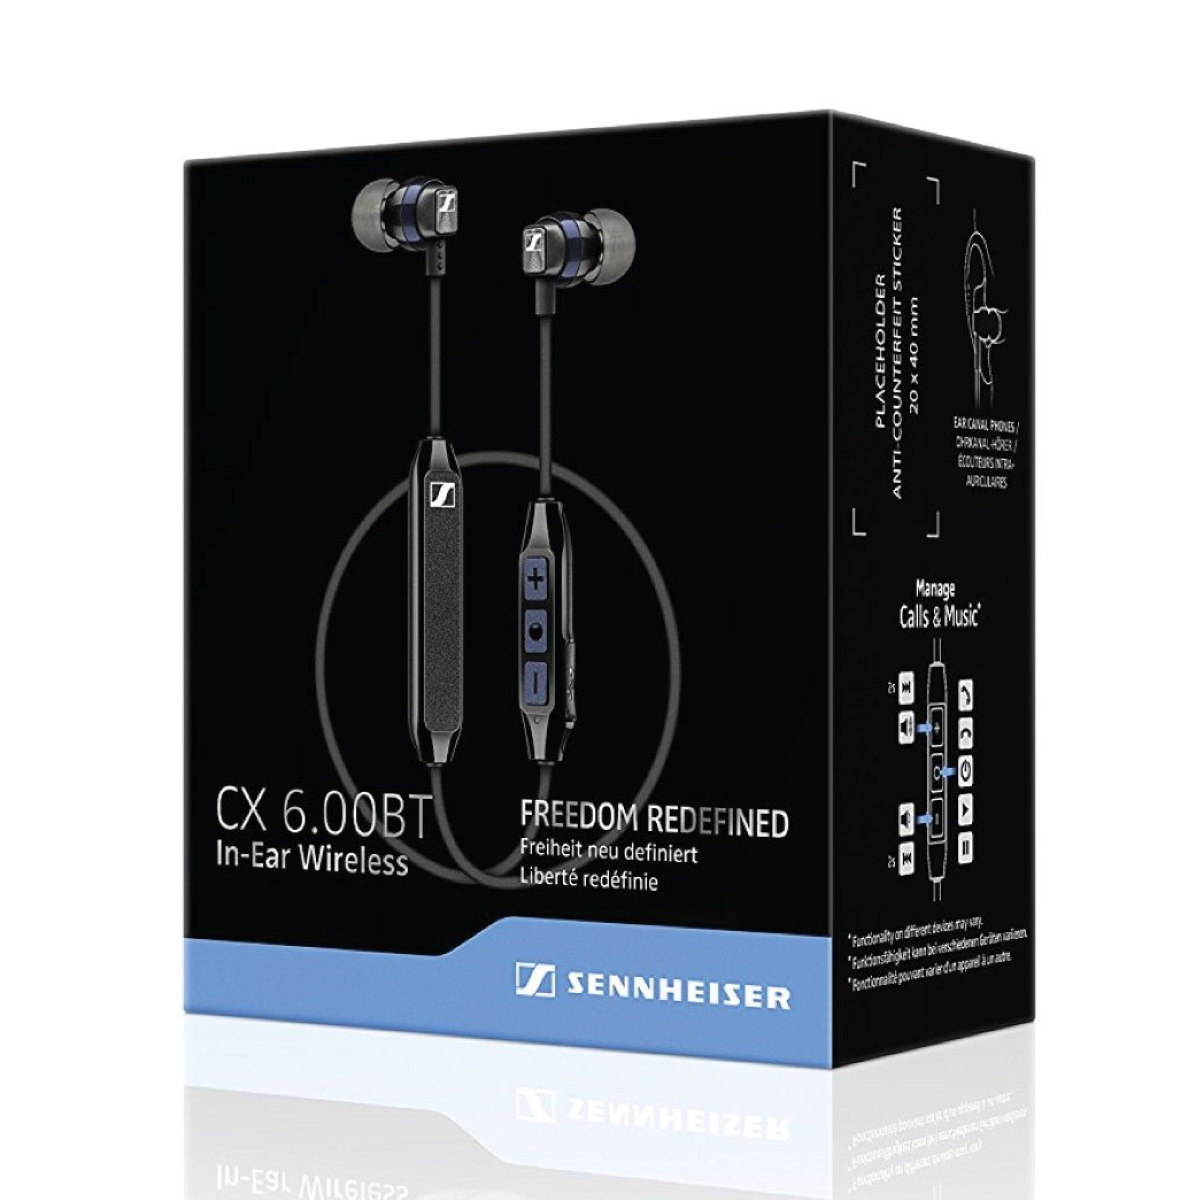 Sennheiser CX 6.00BT - Wireless Earphone, Sennheiser, Wireless Headphones - AVStore.in